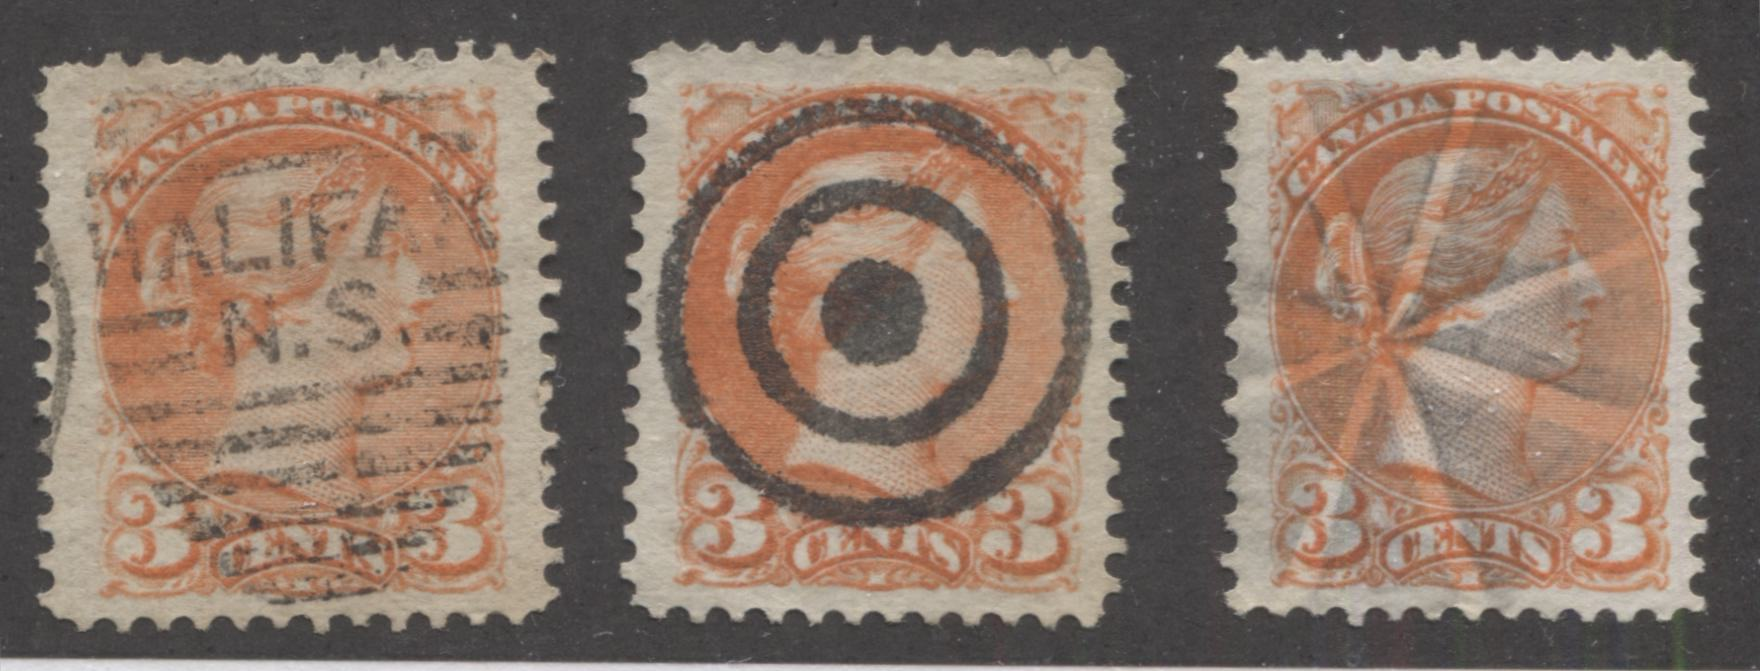 Canada #37 3c Orange Red Queen Victoria, 1870-1897 Small Queen Issue, Three Fine or Very Fine Used Examples of the Late Montreal Printing, Each Cancelled With a Different Cancellation Brixton Chrome